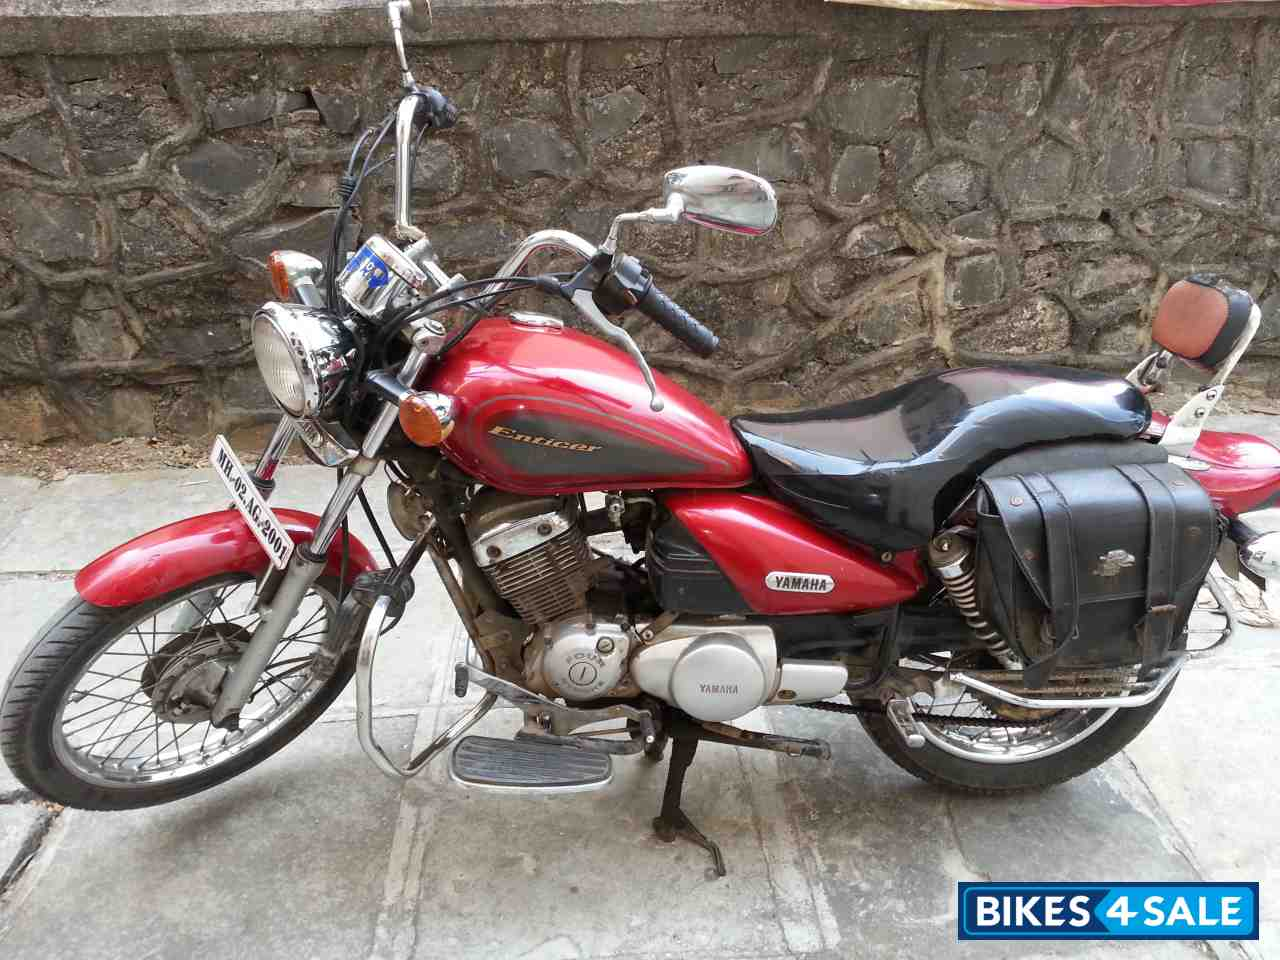 Used Yamaha Enticer For Sale In Mumbai ID 106589 Red Colour